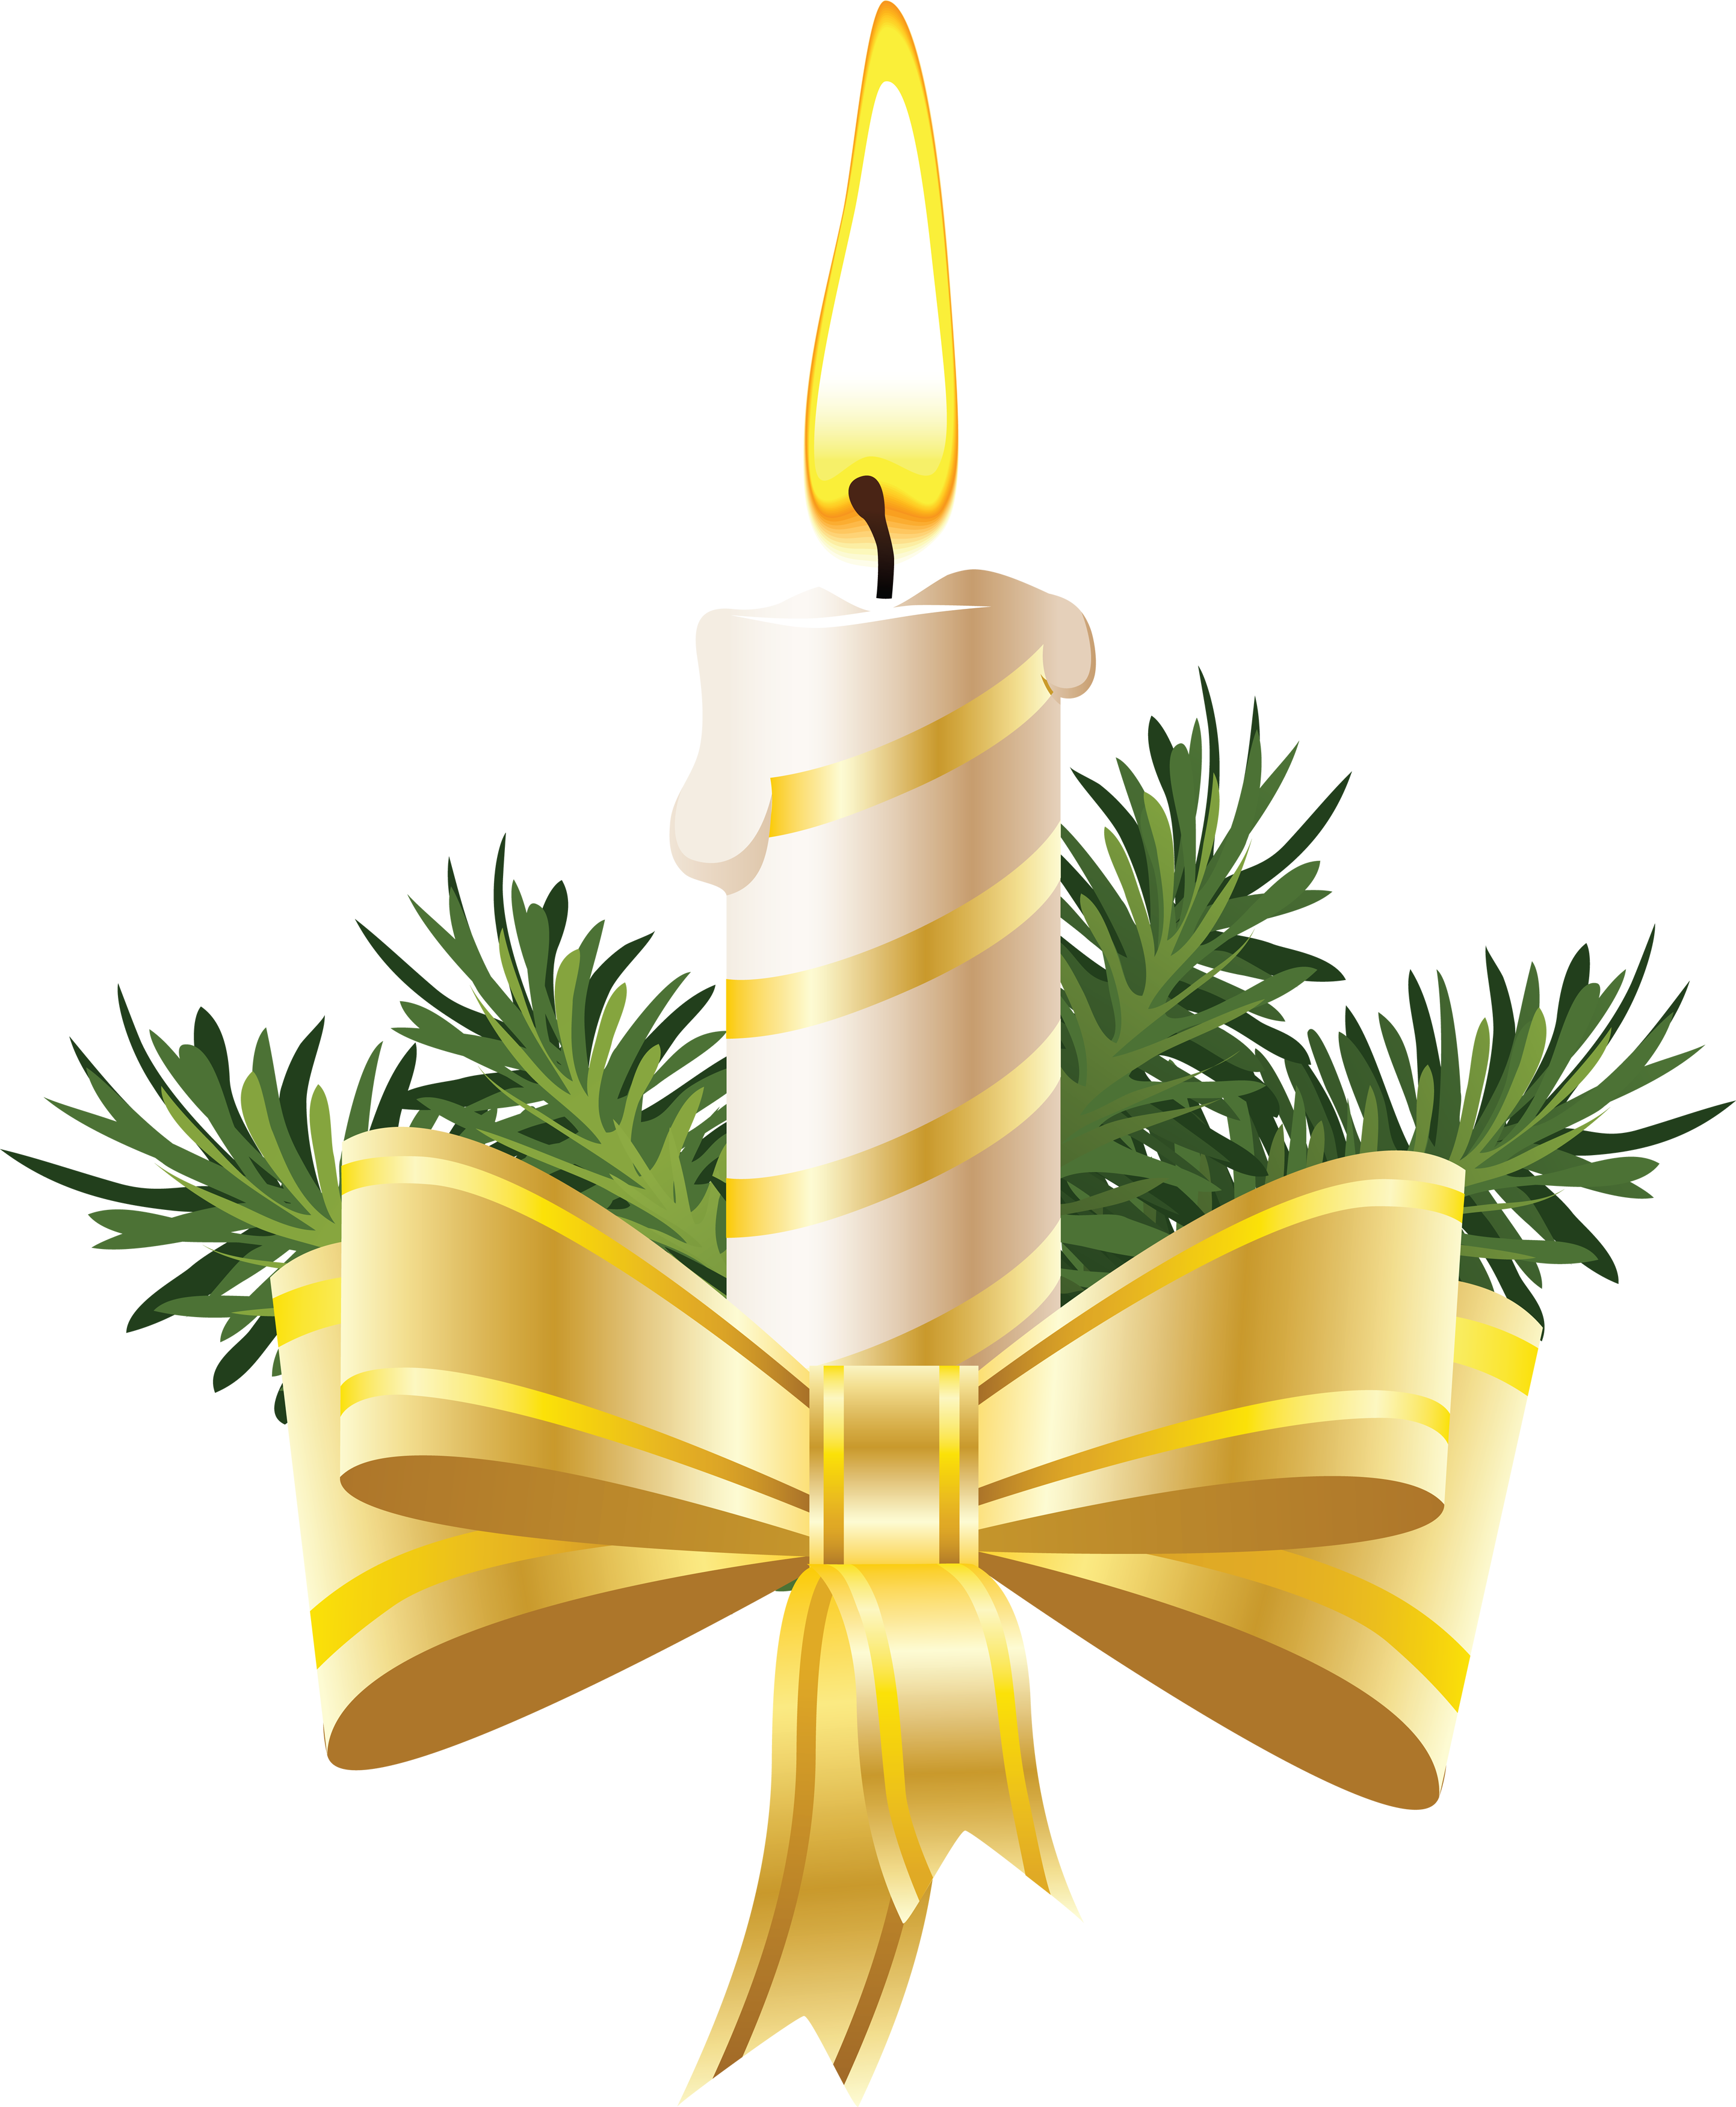 Transparent candles rip candle. Png image